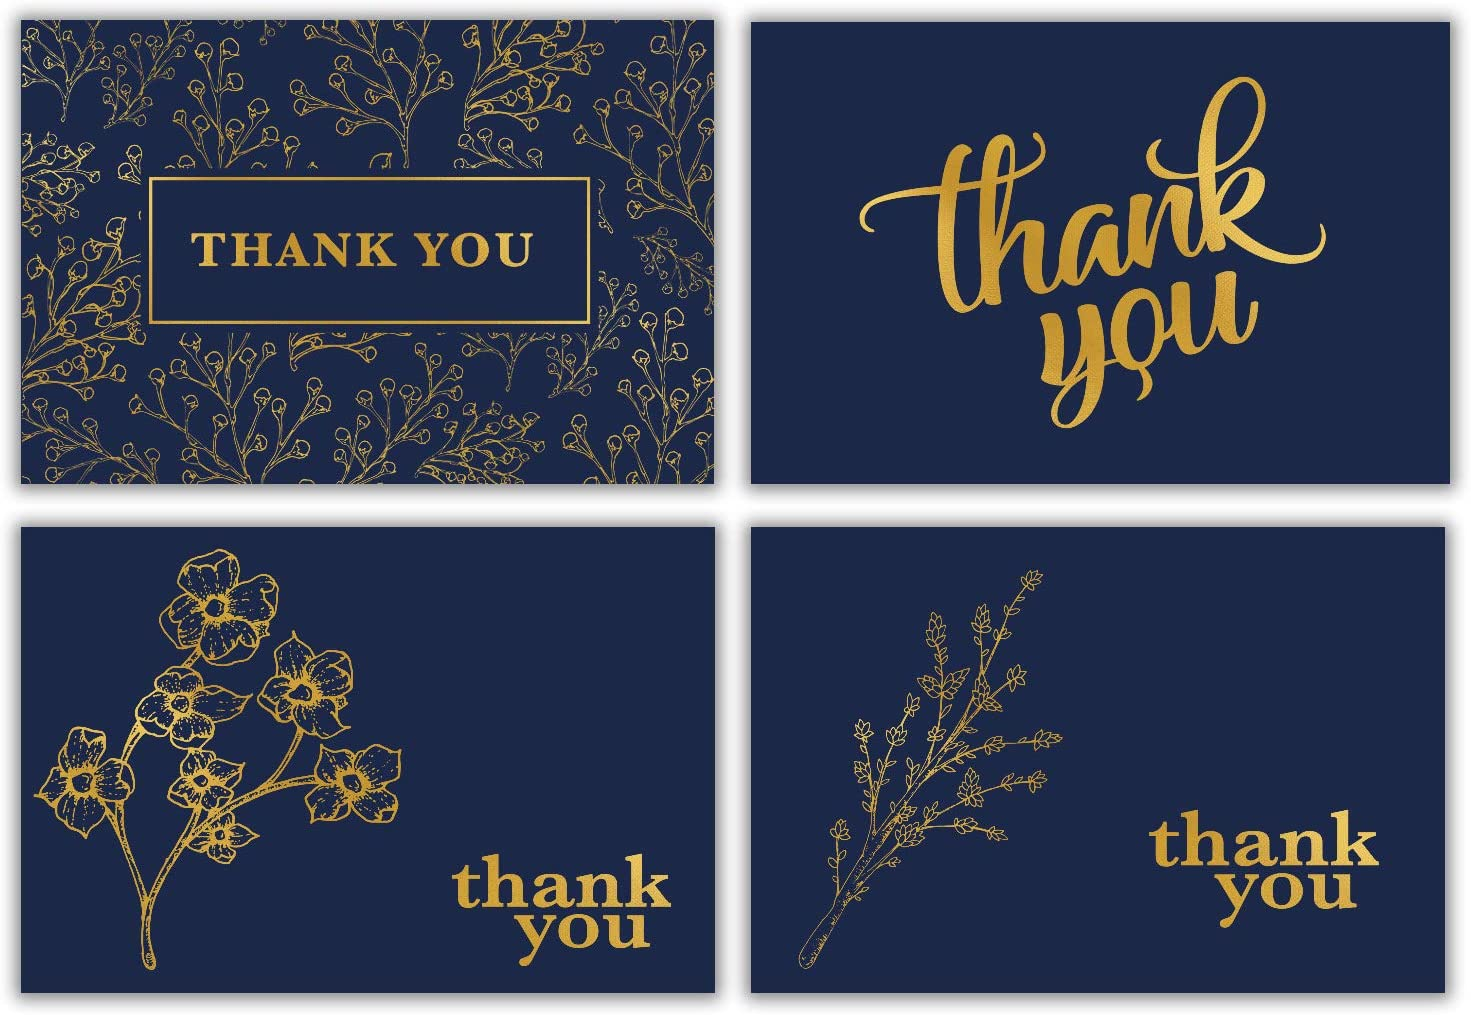 100 Thank You Cards Bulk w/Gold Foil Stickers & White Envelopes – 4x6 Blank Note Cards – Perfect for Weddings, Bridal Showers, Graduation, and Baby Showers